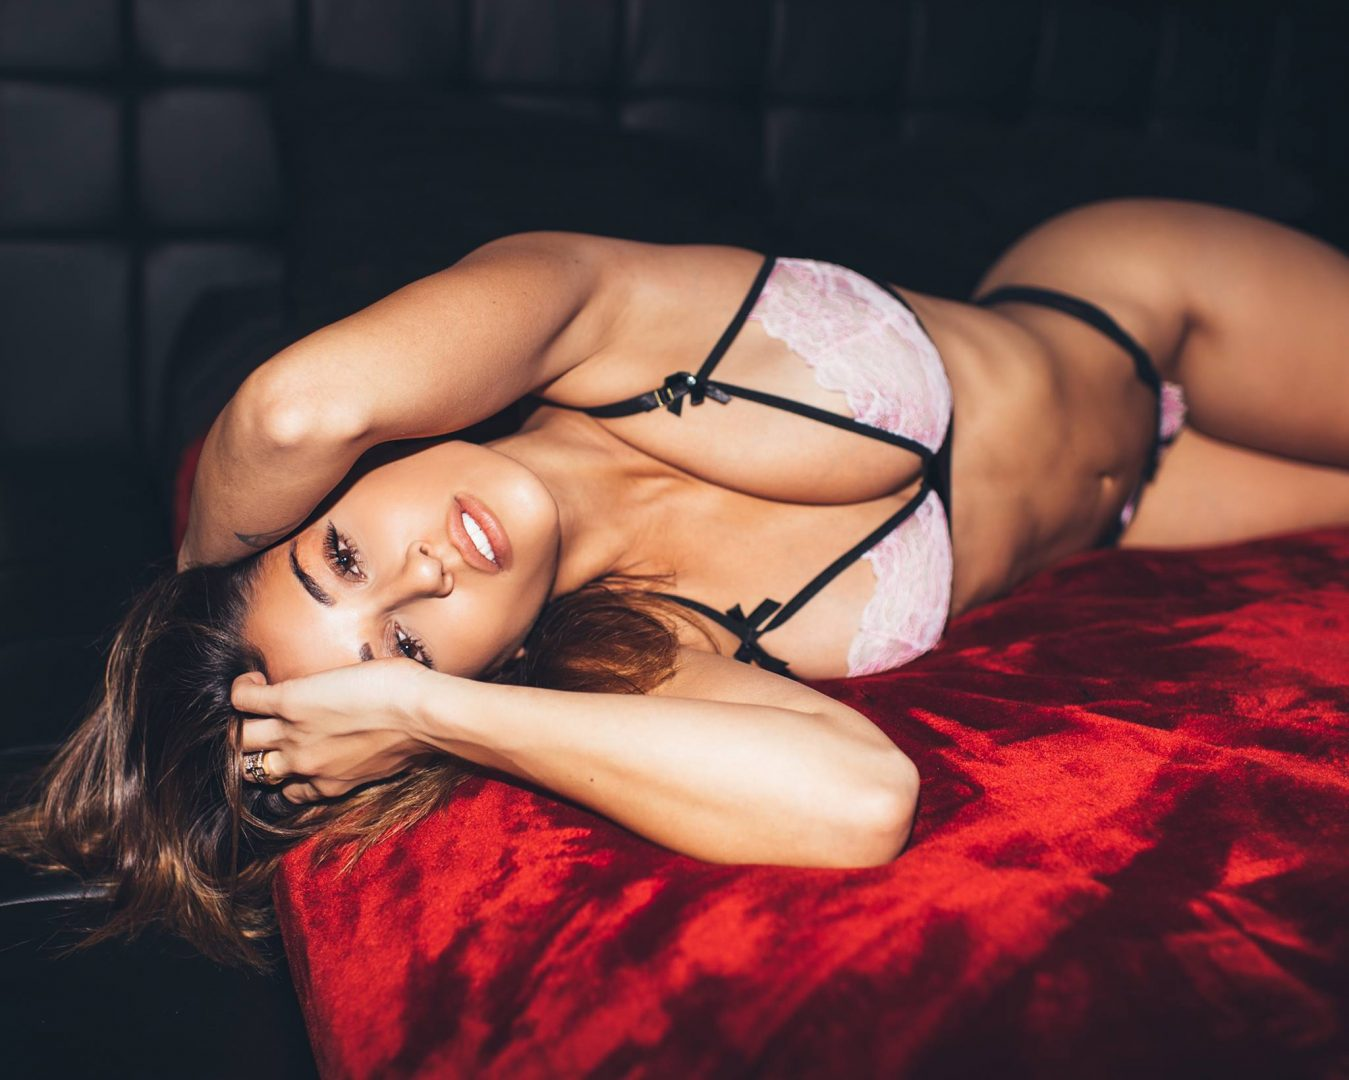 Tianna Gregory